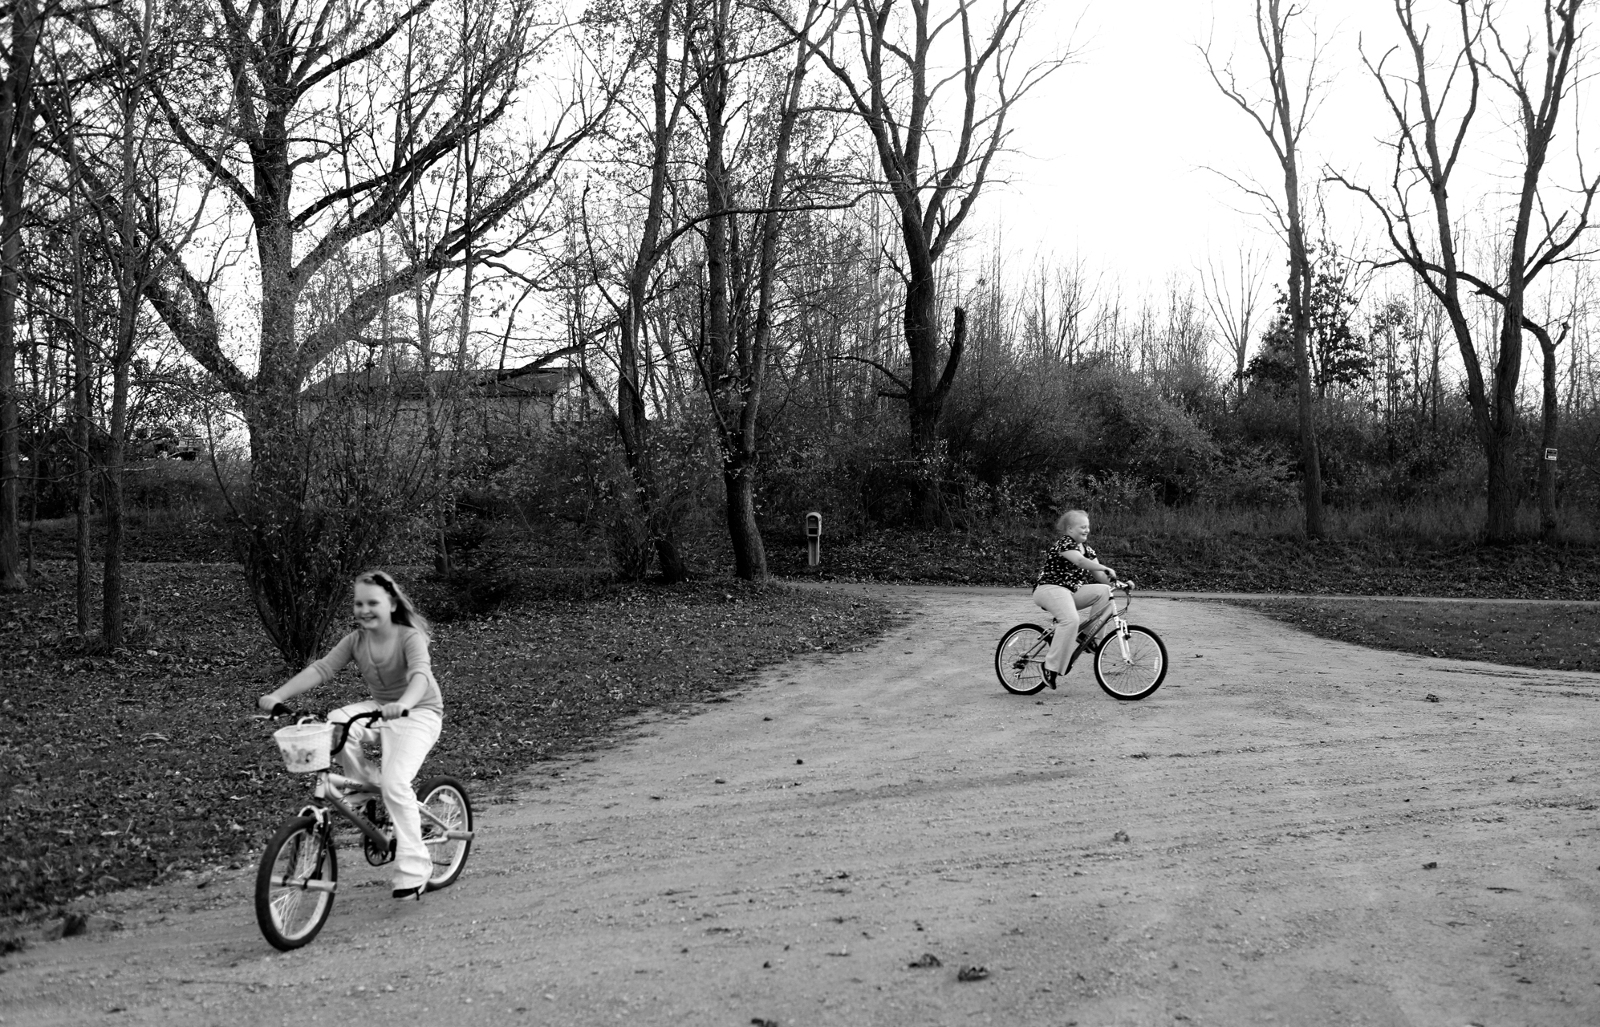 Allie and her cousin Morgan ride their bikes in front of their grandmother's home in Jackson County, Mich. on Thursday, October 25, 2012. Allie doesn't get to see her friends very much, but gets to play with her cousins when they visit.